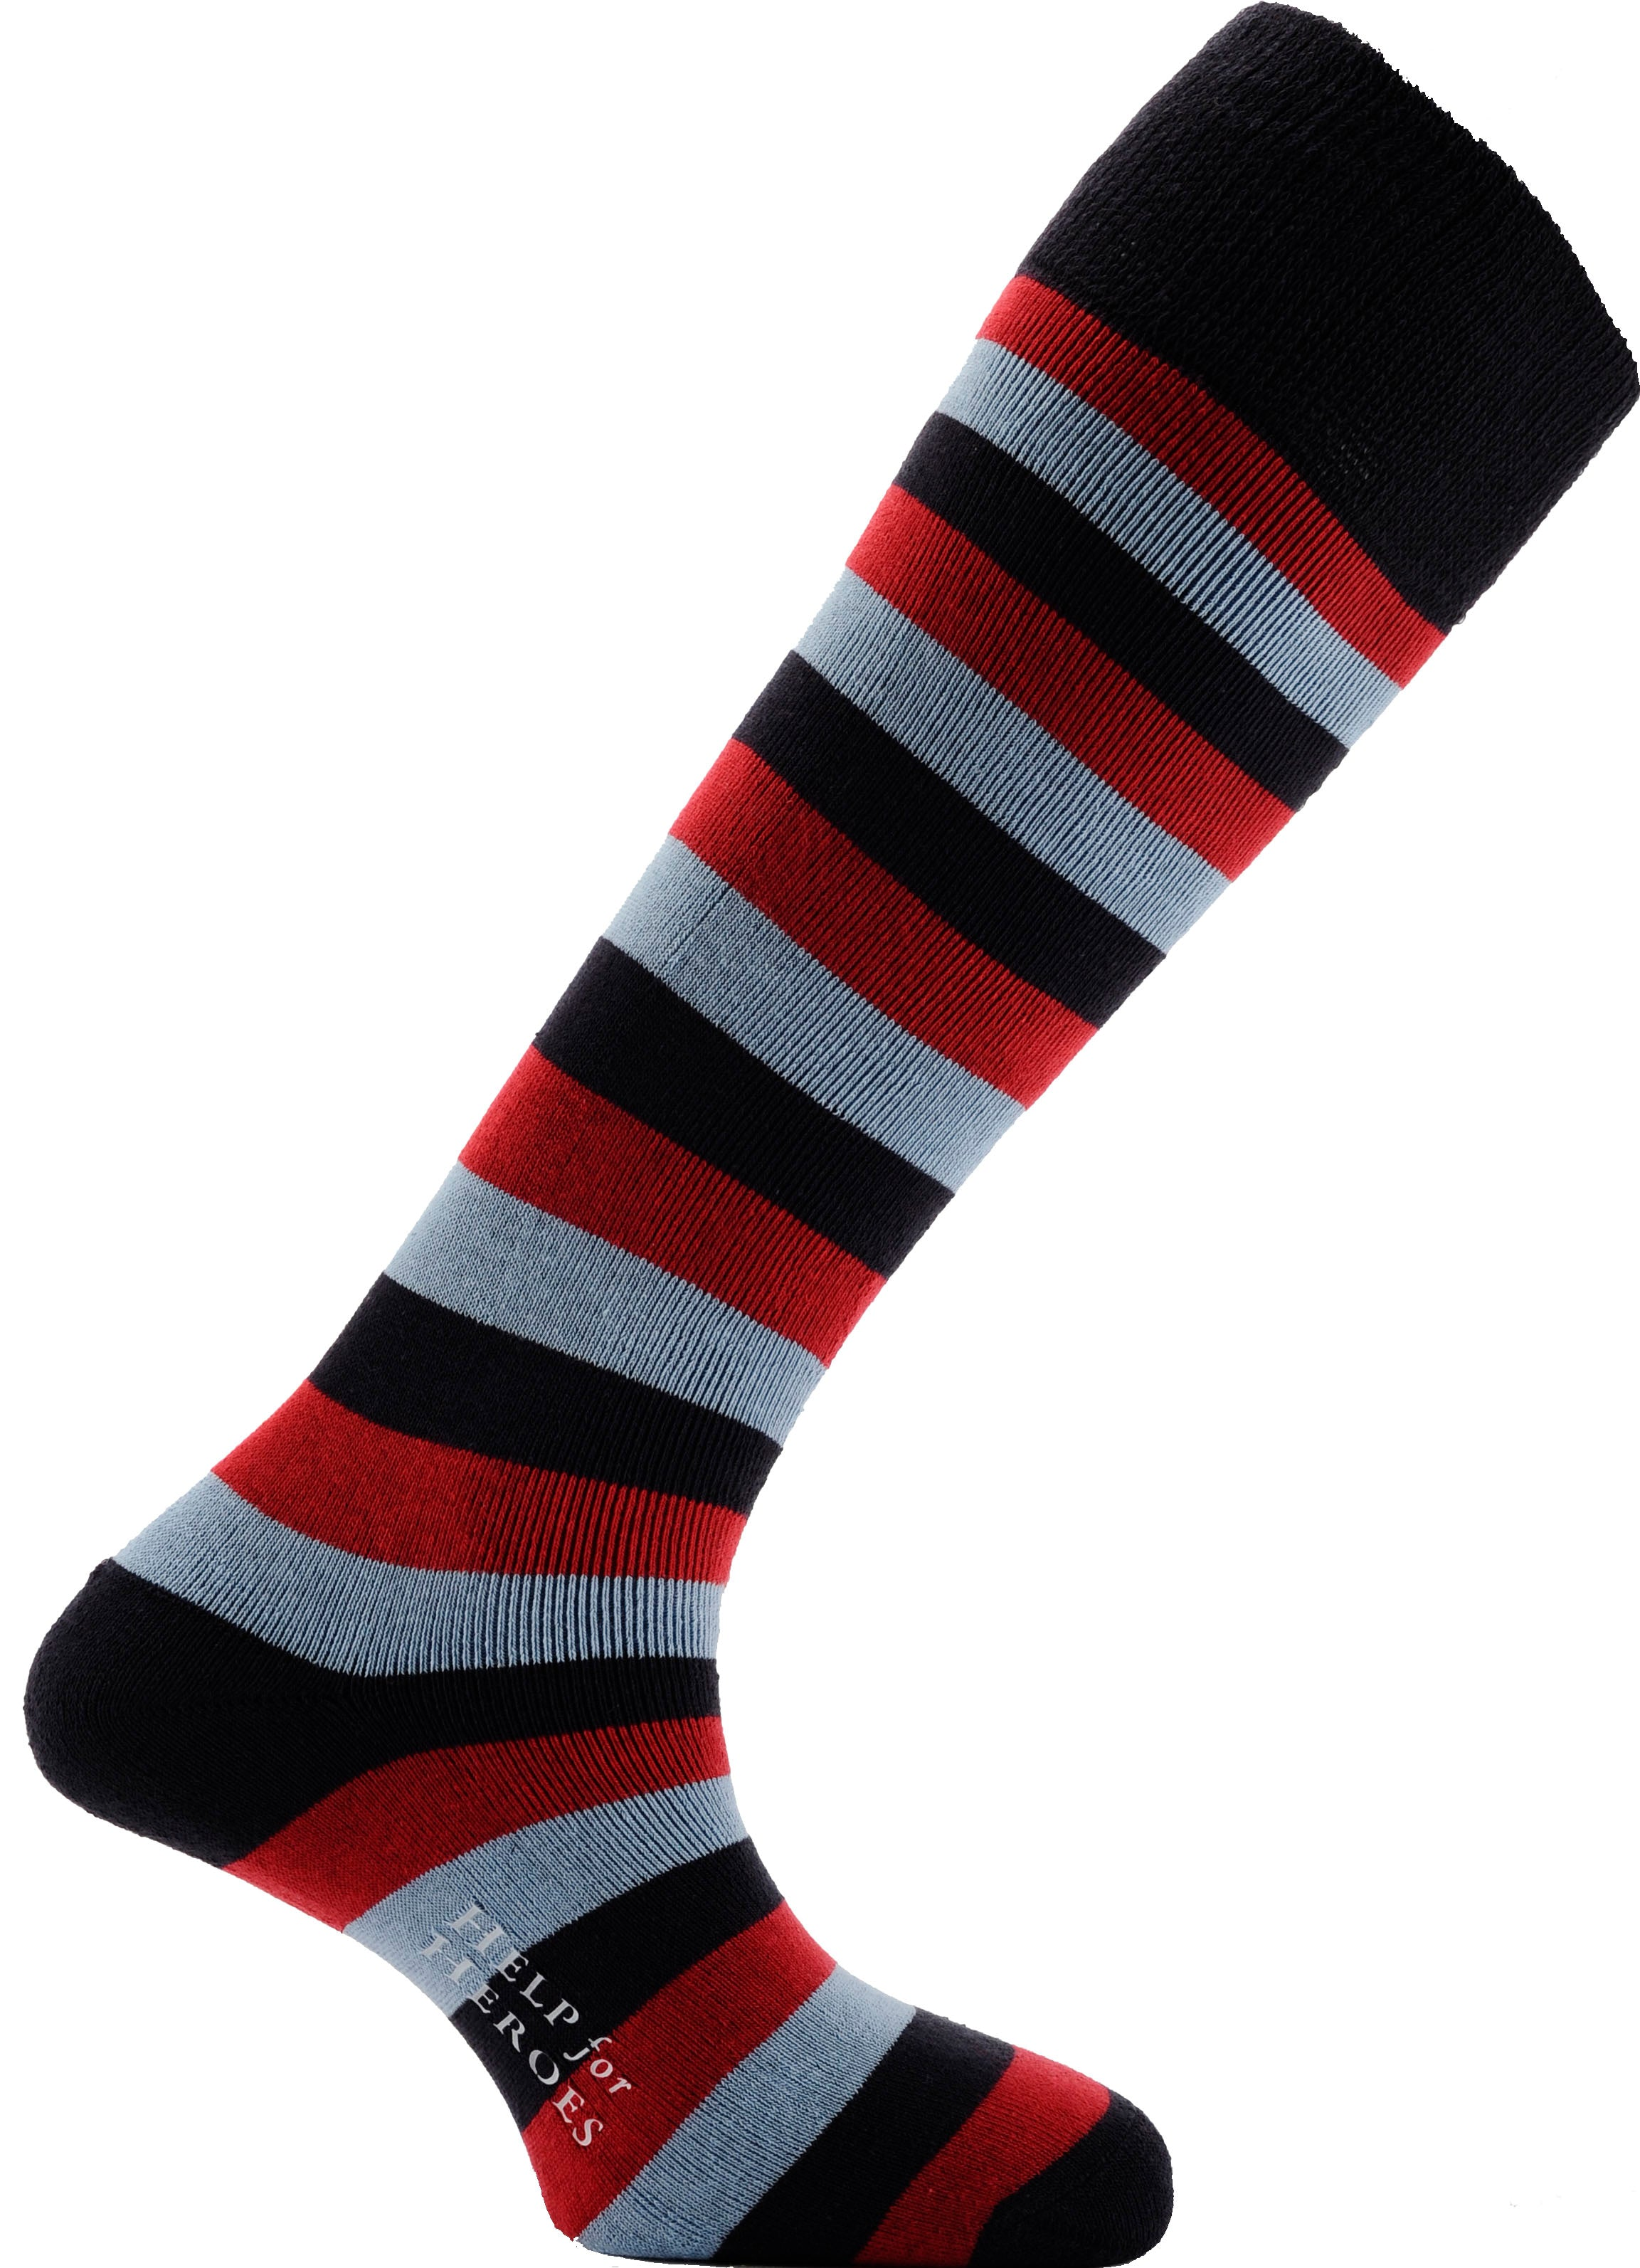 Help for Heroes Welly Boot Sock